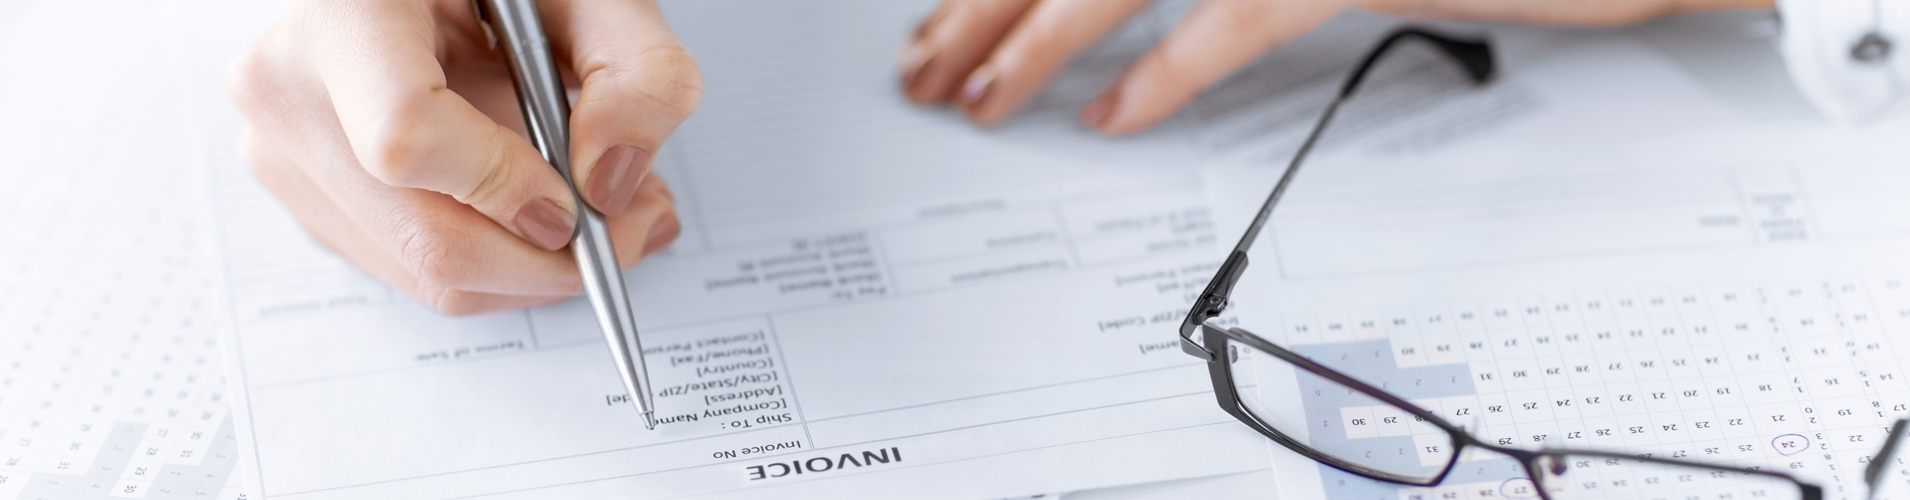 invoice factoring services selling invoices for cash invoice factoring services